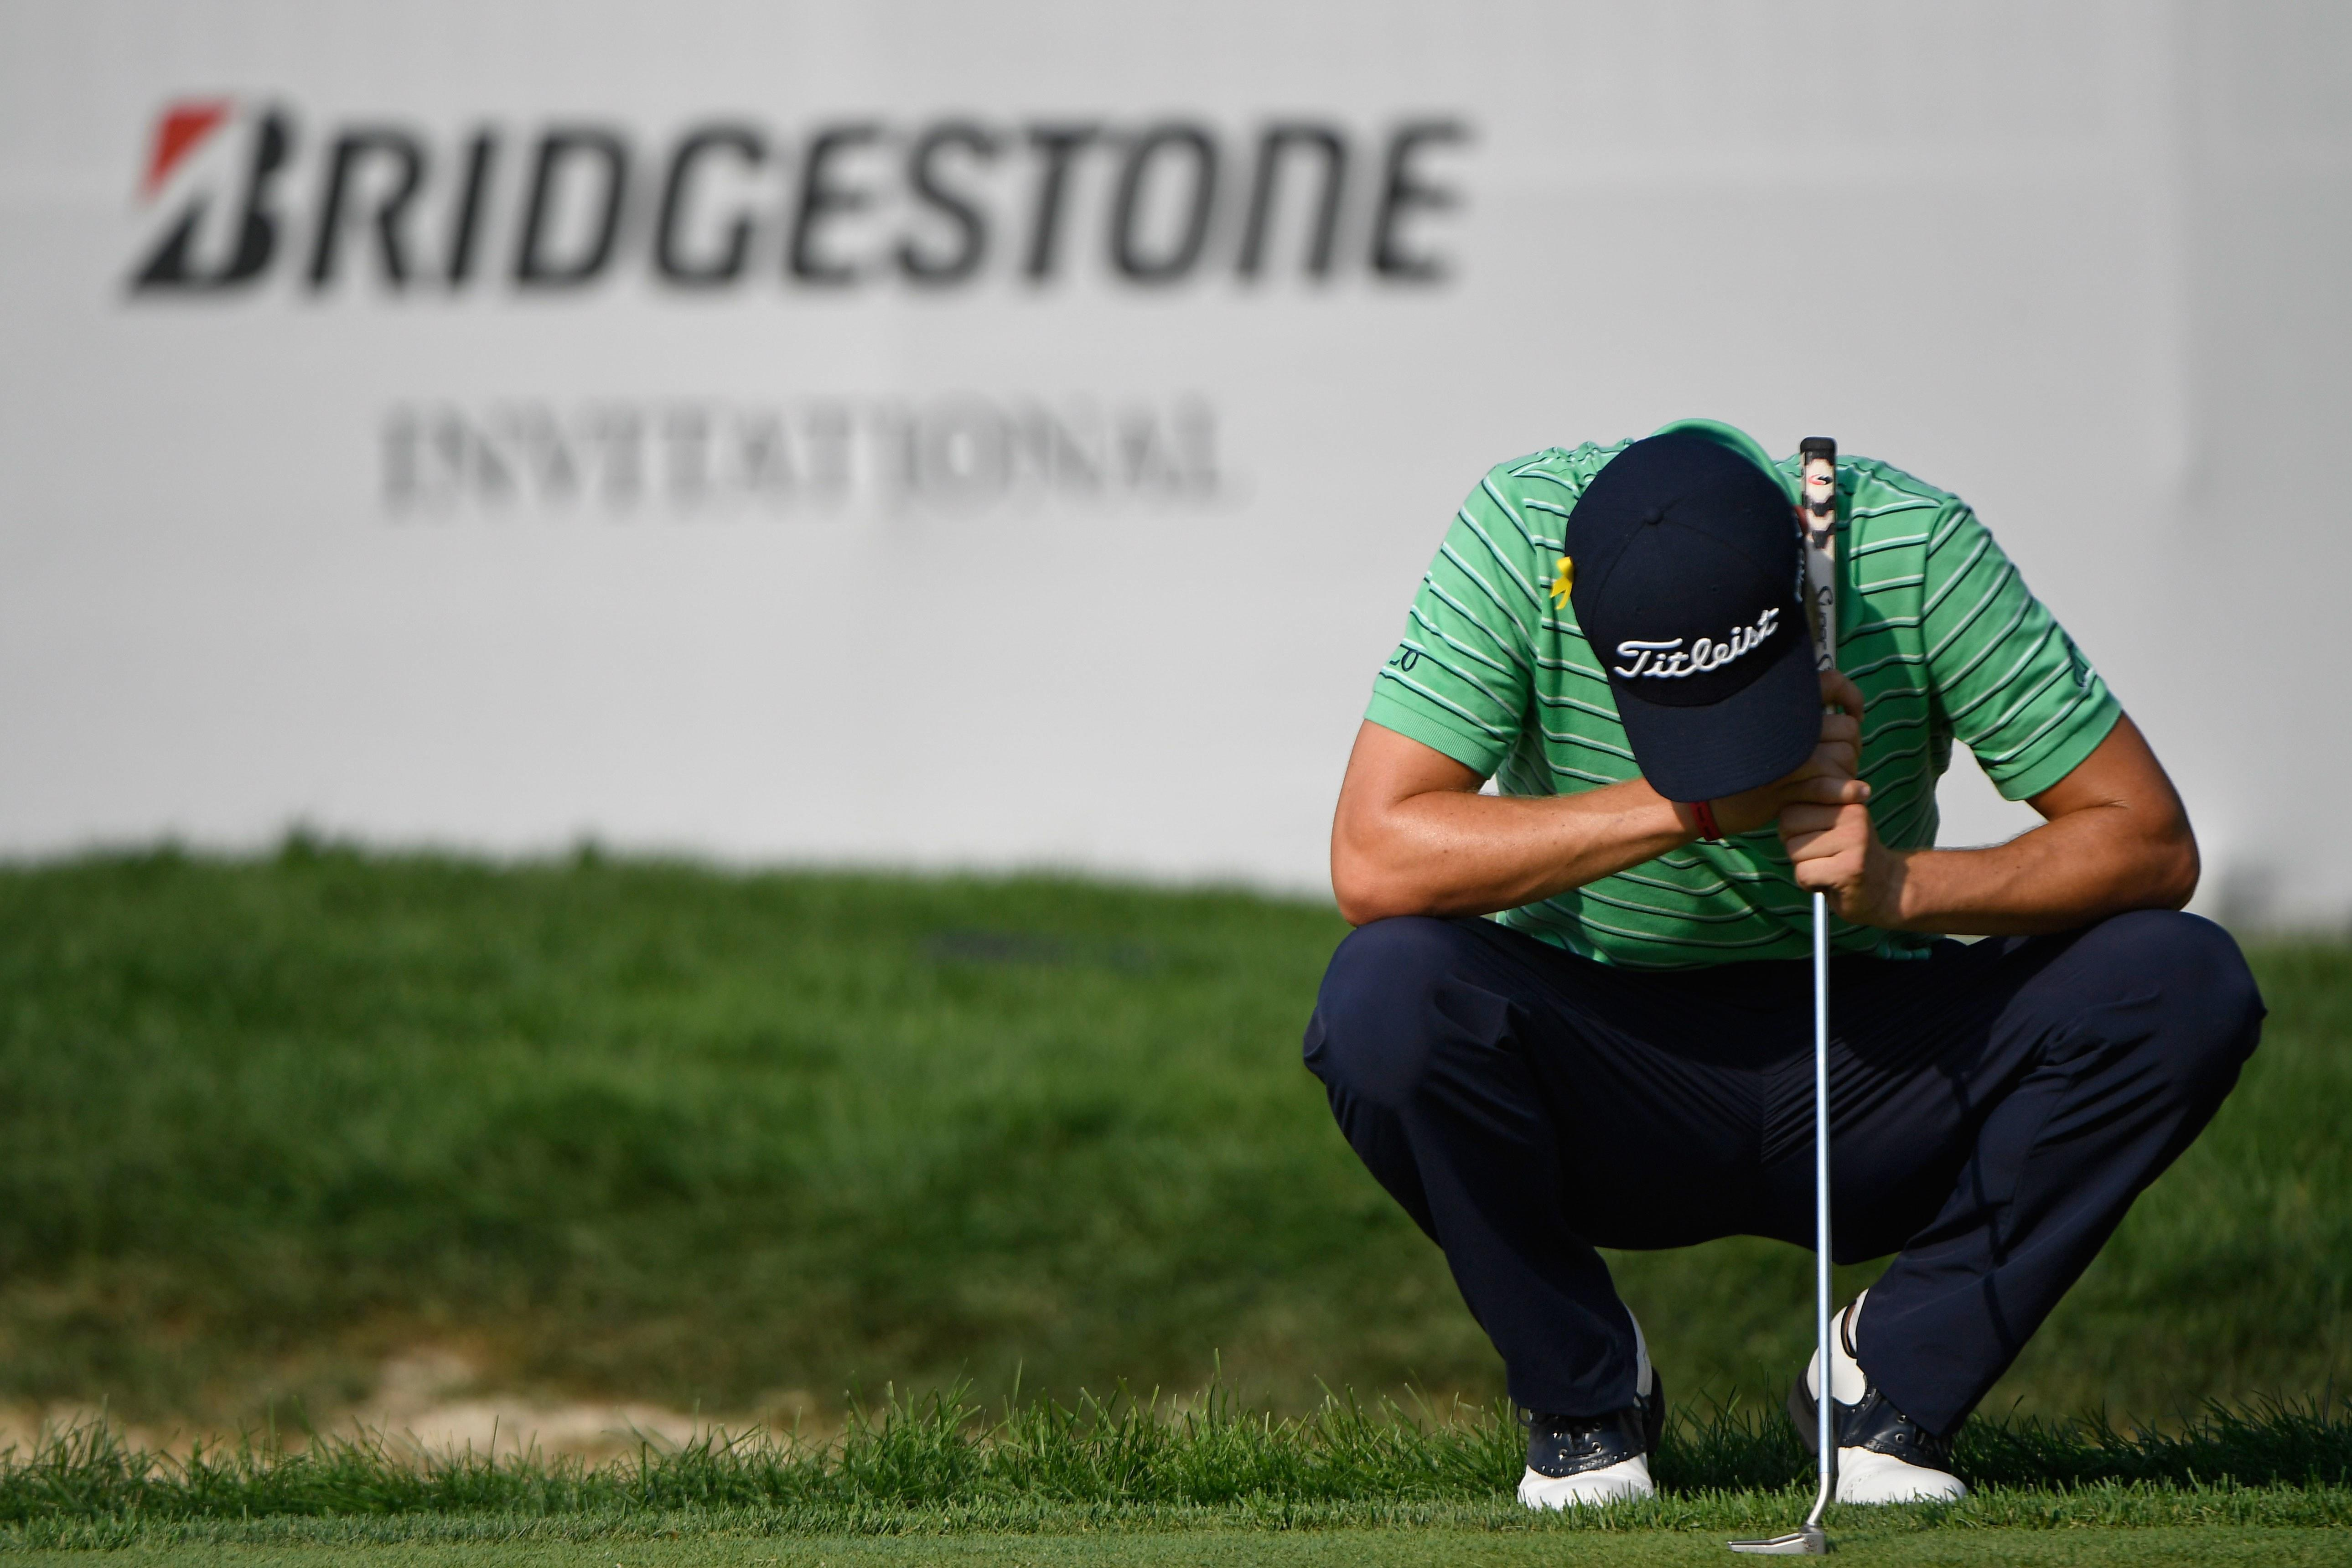 Firestone Hours Sunday >> Justin Thomas Gets Down To Business With A Methodical Sunday